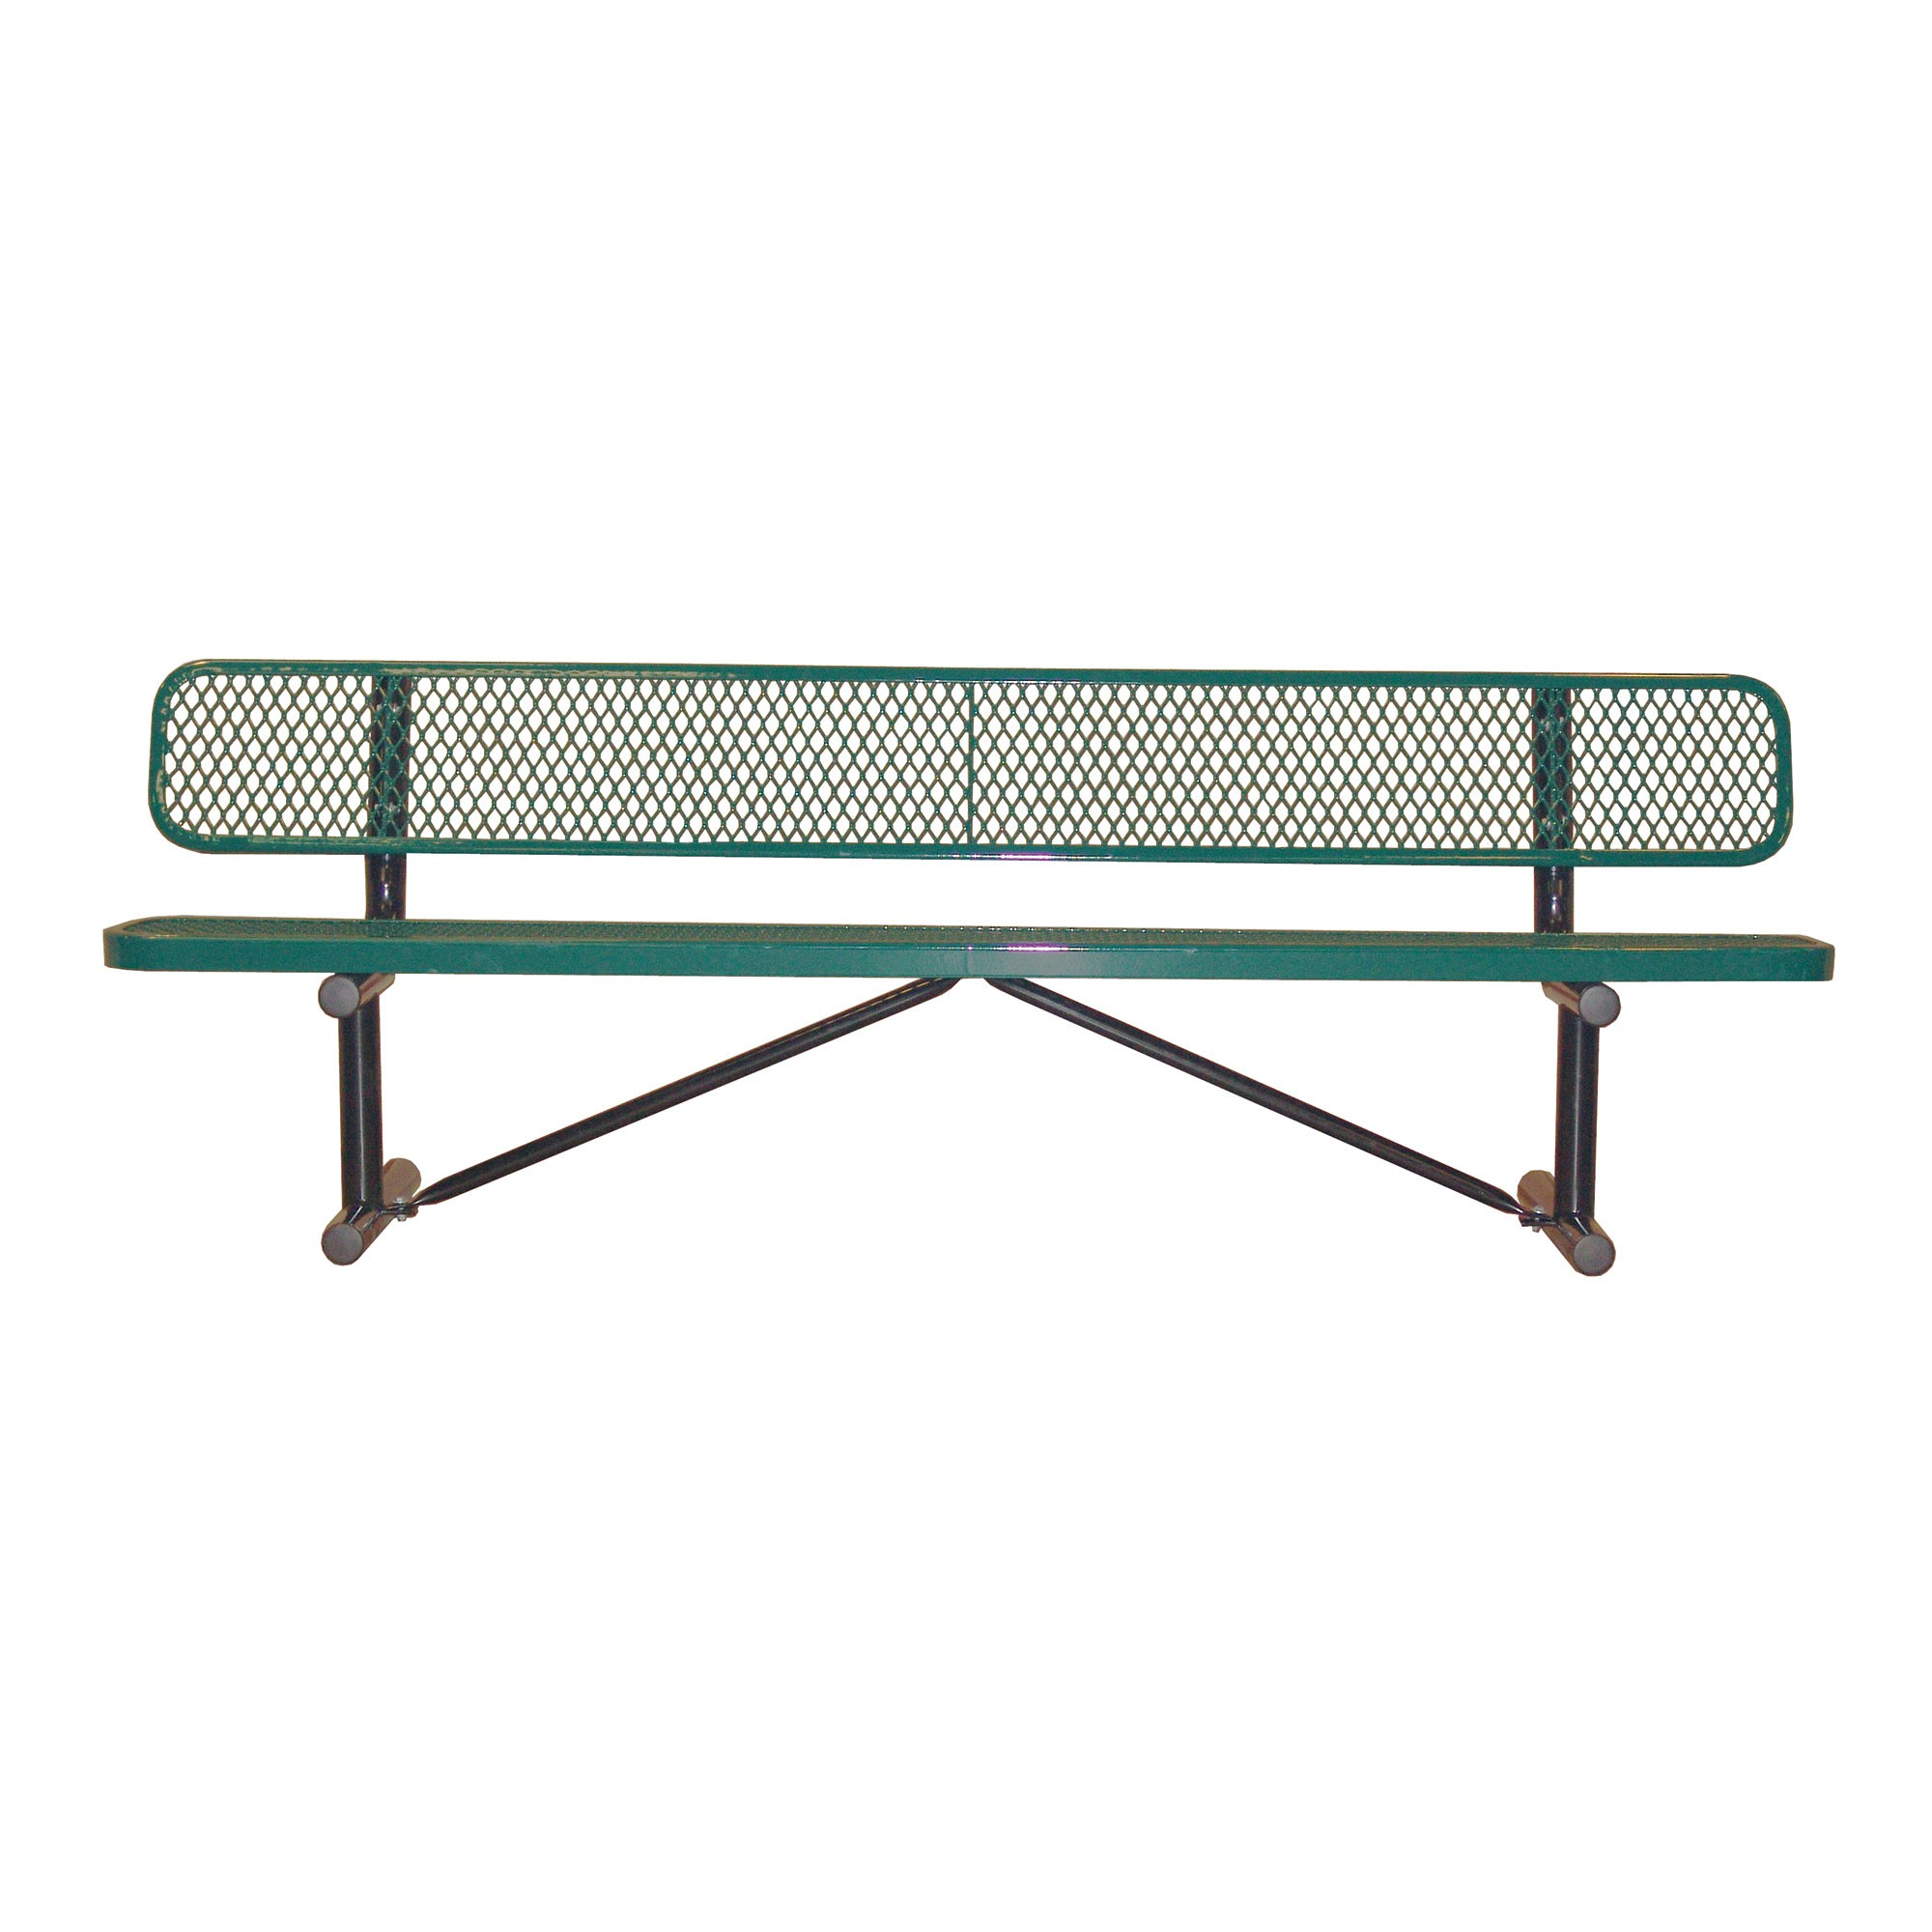 8 Standard Expanded Metal Bench With Back By Leisure Craft B8wbp